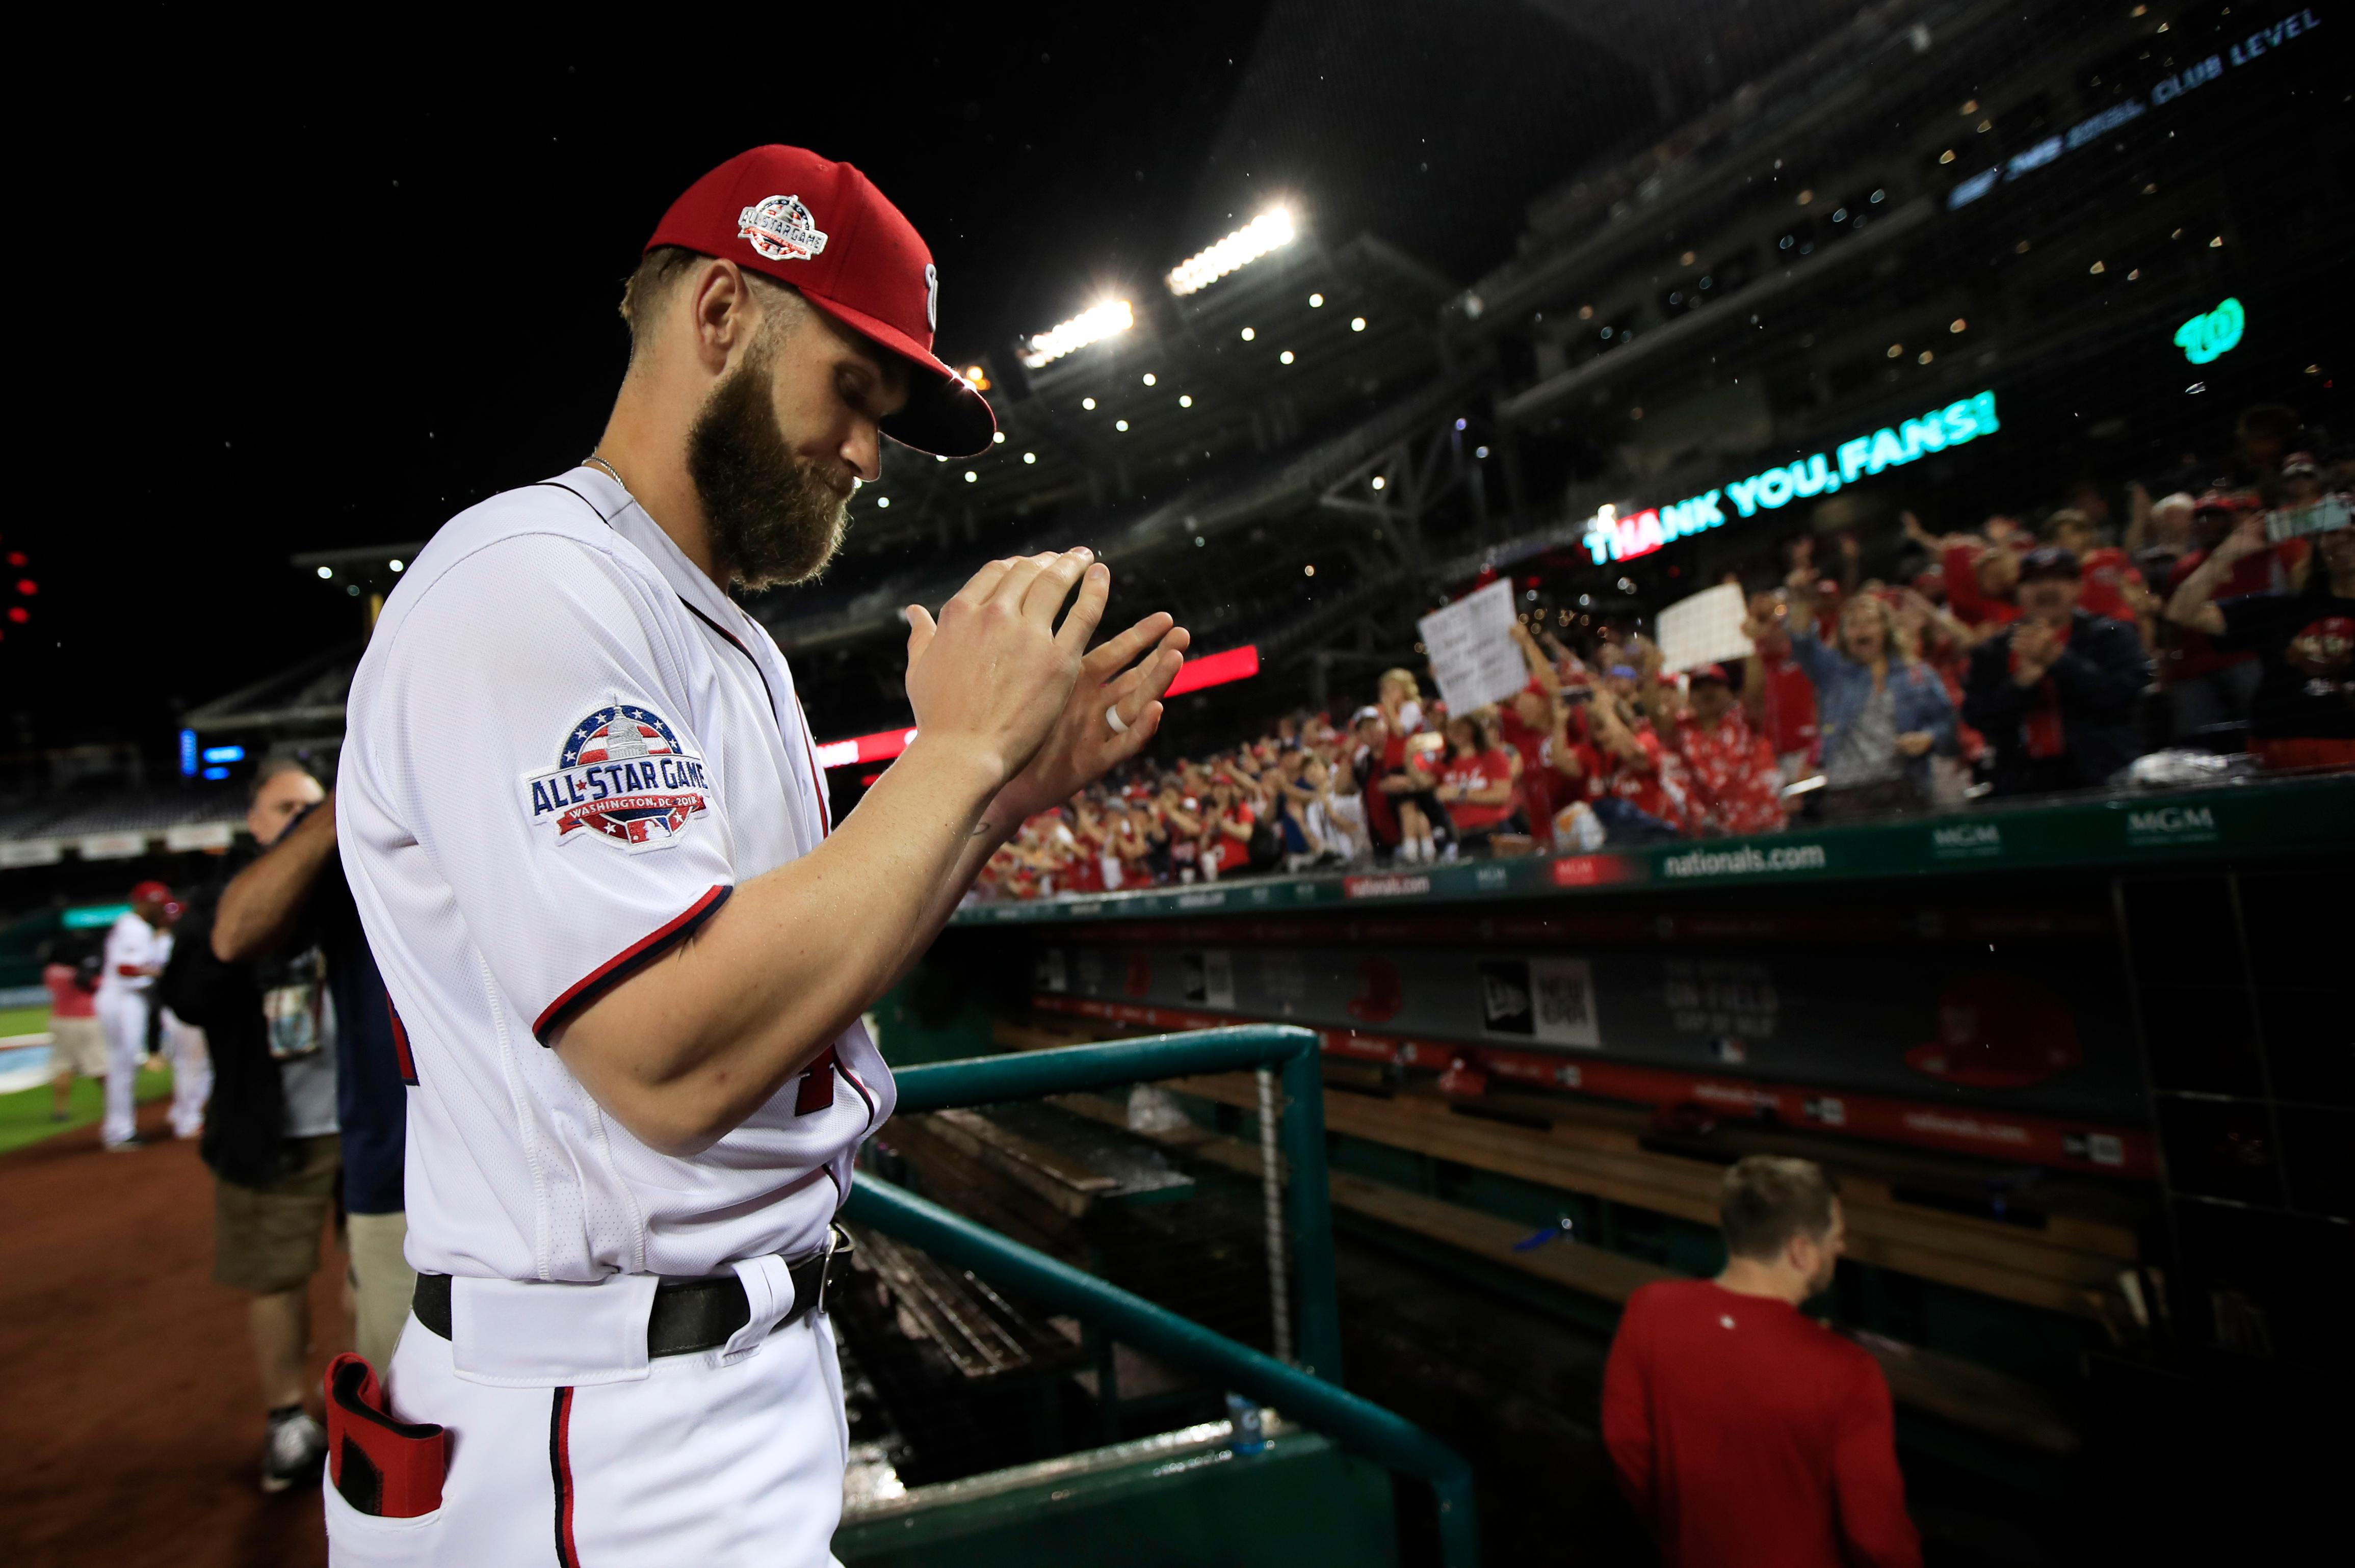 Washington Nationals Bryce Harper claps his hands as he leaves the field after the Nationals ended their last home game of the season with a 9-3, rain-shortened win against the Miami Marlins in Washington, Wednesday, Sept. 26, 2018. (AP Photo/Manuel Balce Ceneta)